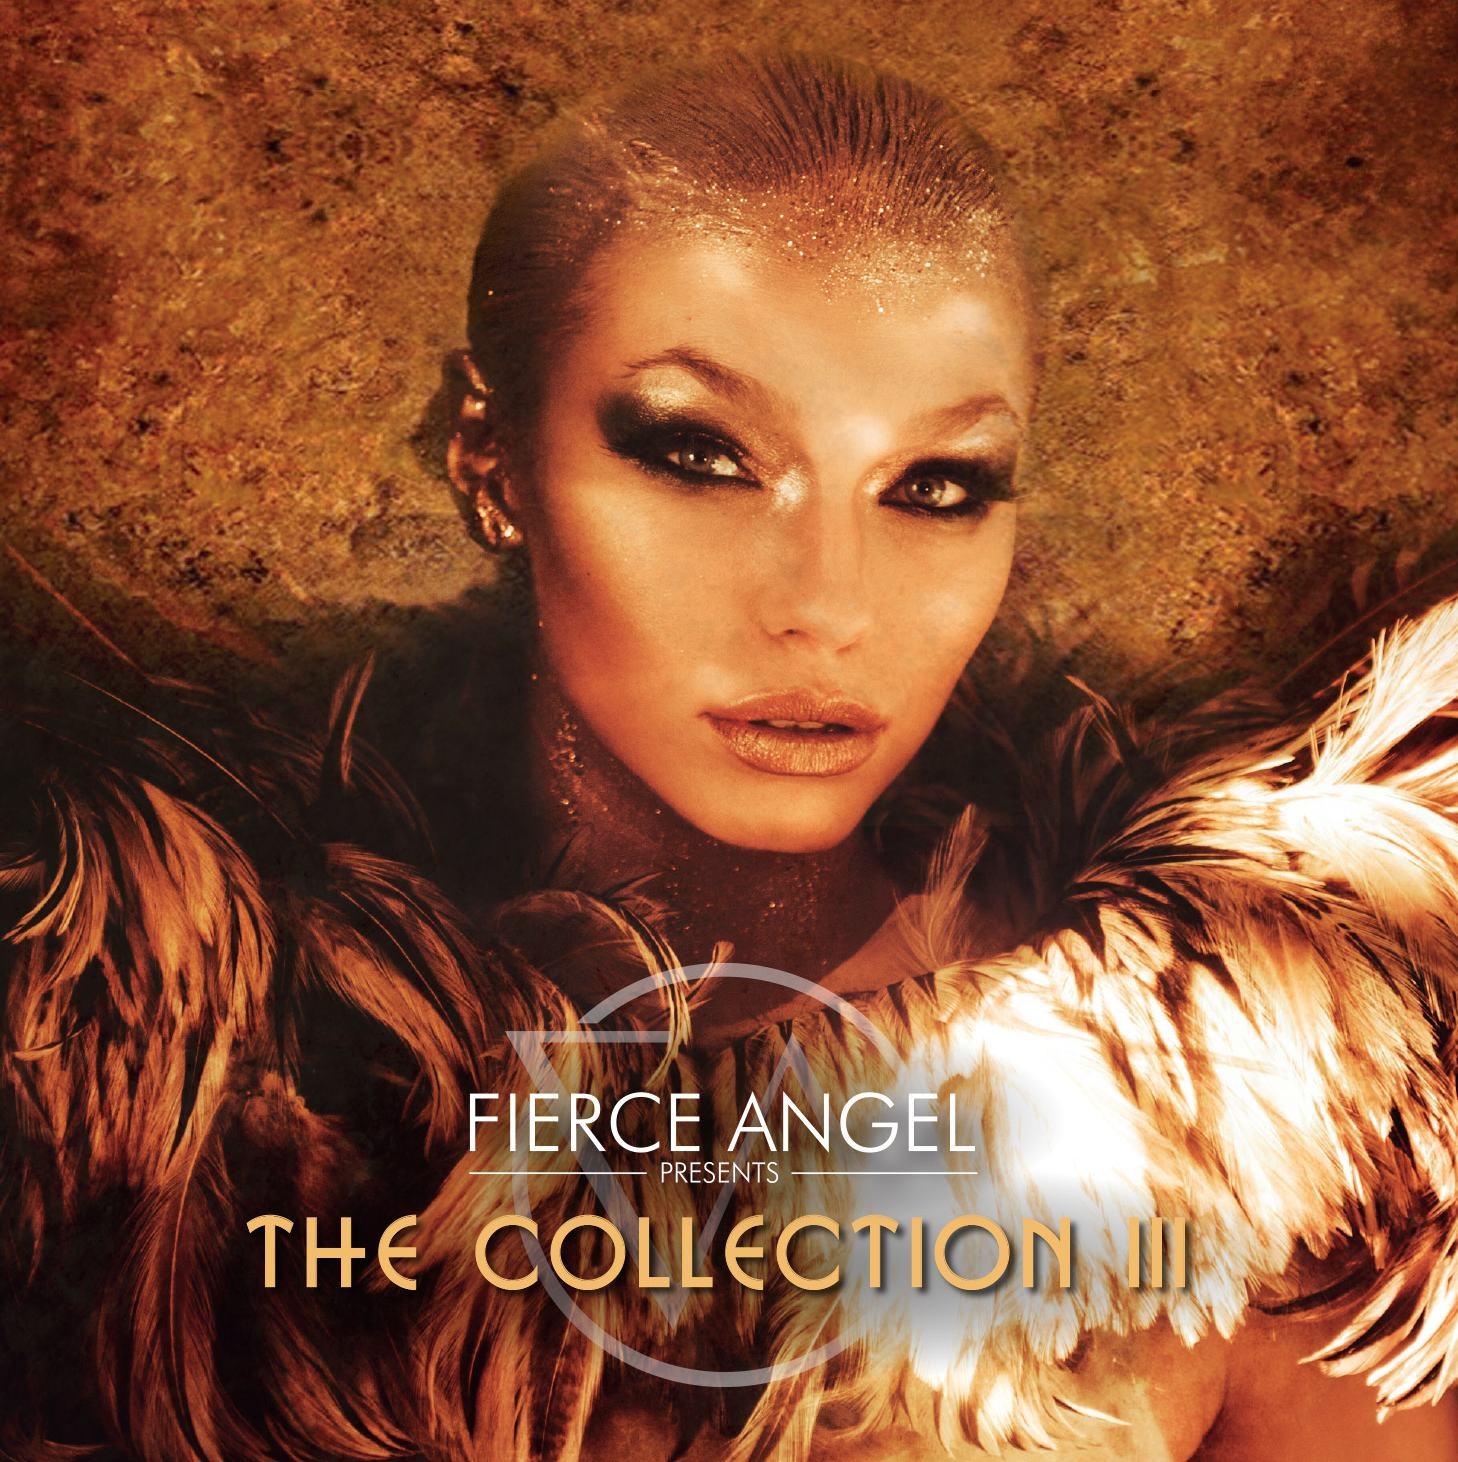 The Collection Vol III 2CD - Fierce Angel